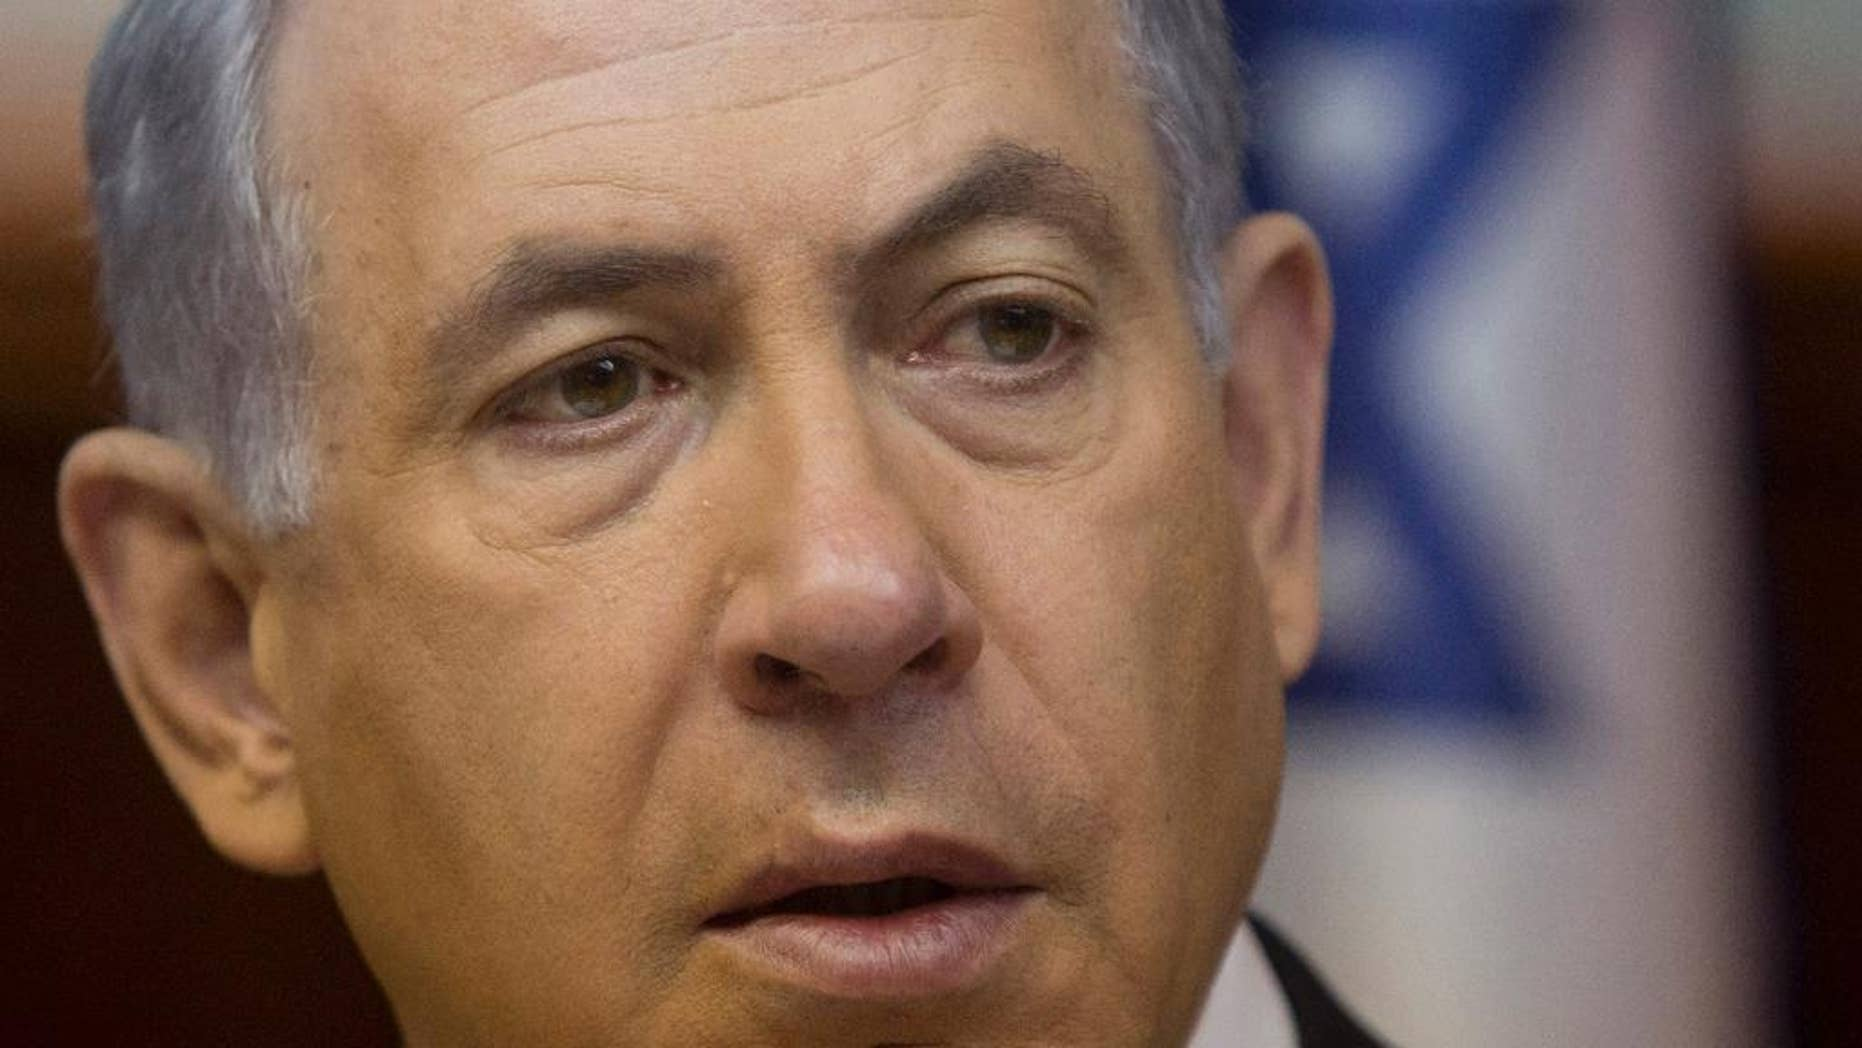 FILE - In this Feb. 8, 2015 file-pool photo, Israeli Prime Minister Benjamin Netanyahu attends the weekly cabinet meeting in his Jerusalem office. A group of almost two dozen liberal Democrats have signed a letter to House Speaker John Boehner asking him to postpone Israeli Prime Minister Benjamin Netanyahu's address to a joint meeting of Congress next month. (AP Photo/Sebastian Scheiner, File-Pool)